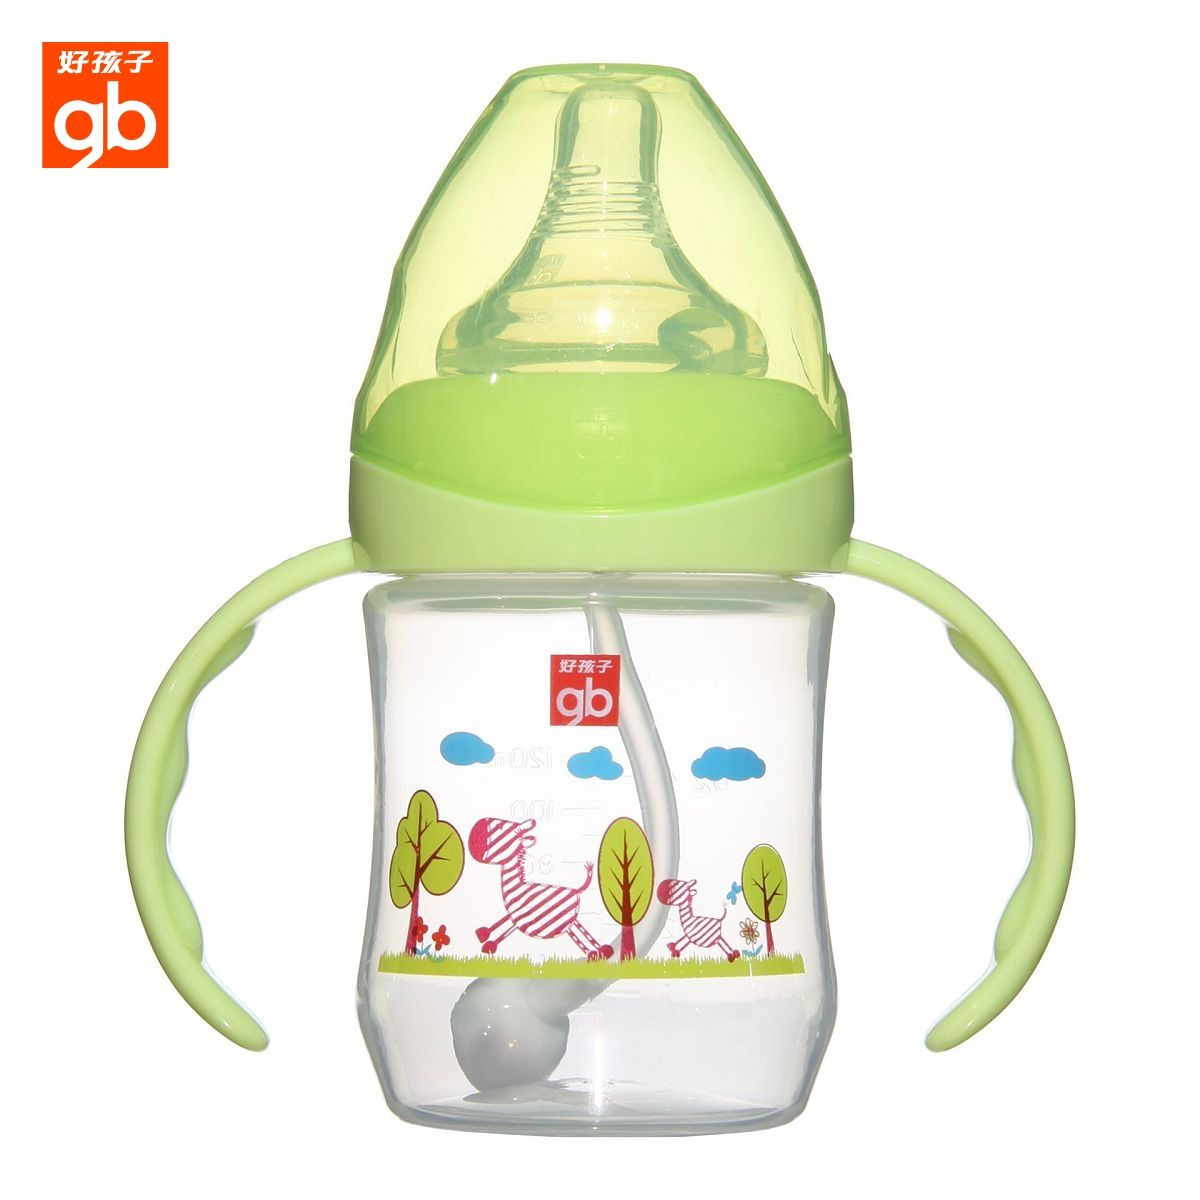 Infant wanting bottle over breast now